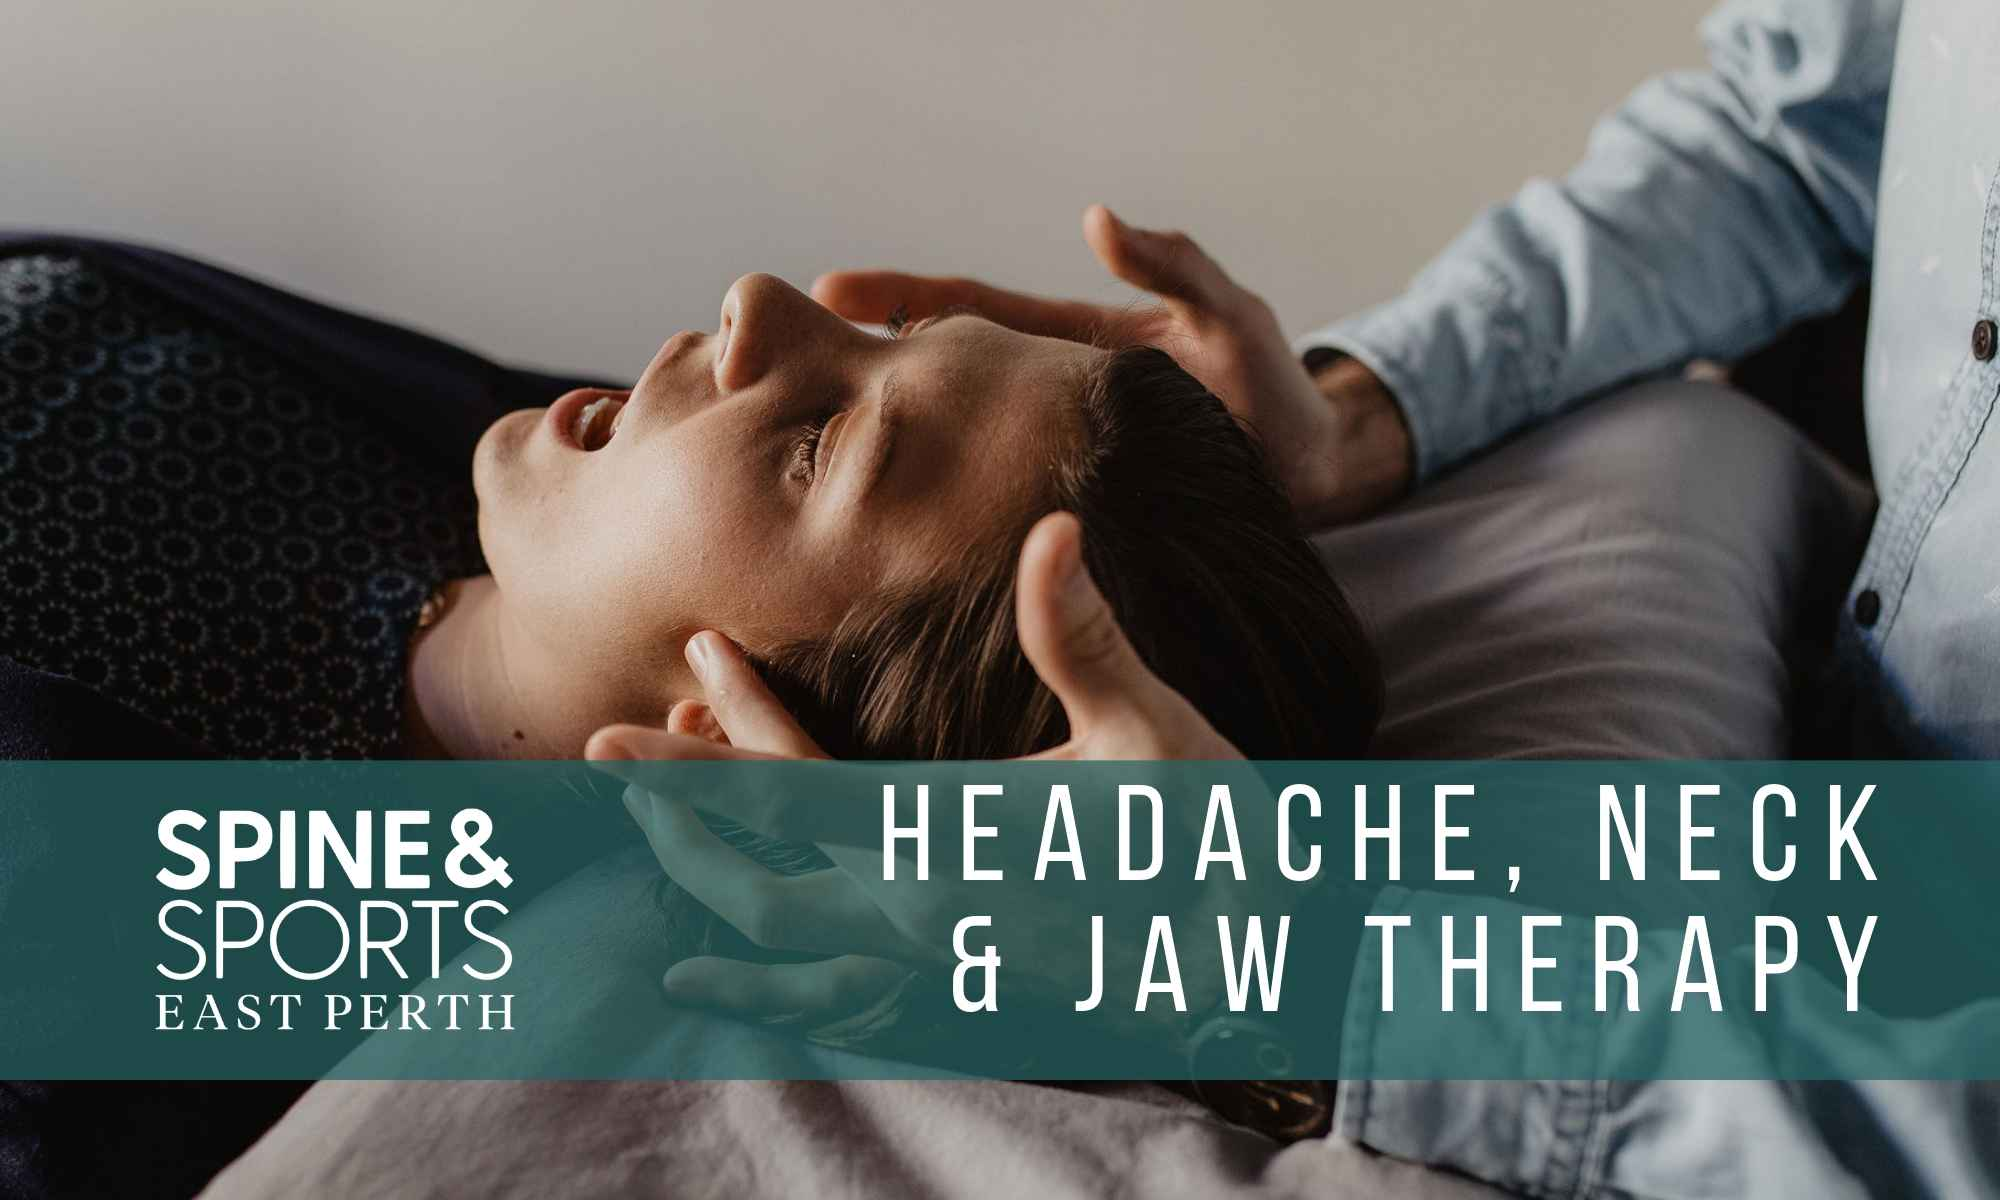 East Perth Headache, Neck & Jaw therapy at Spine & Sports Centre.jpg